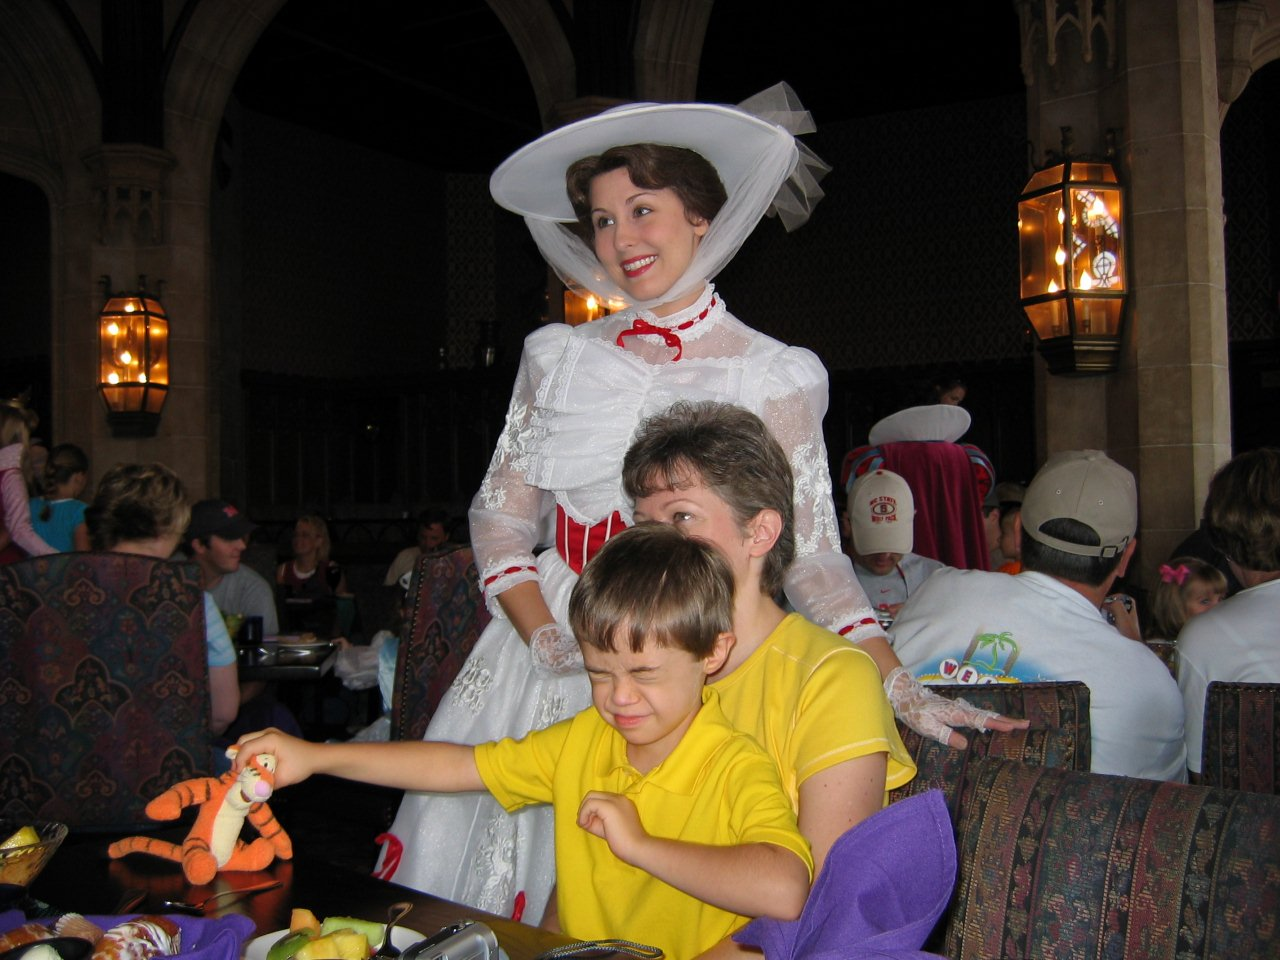 Walt Disney World is a magical place for guests with special needs | PassPorter.com